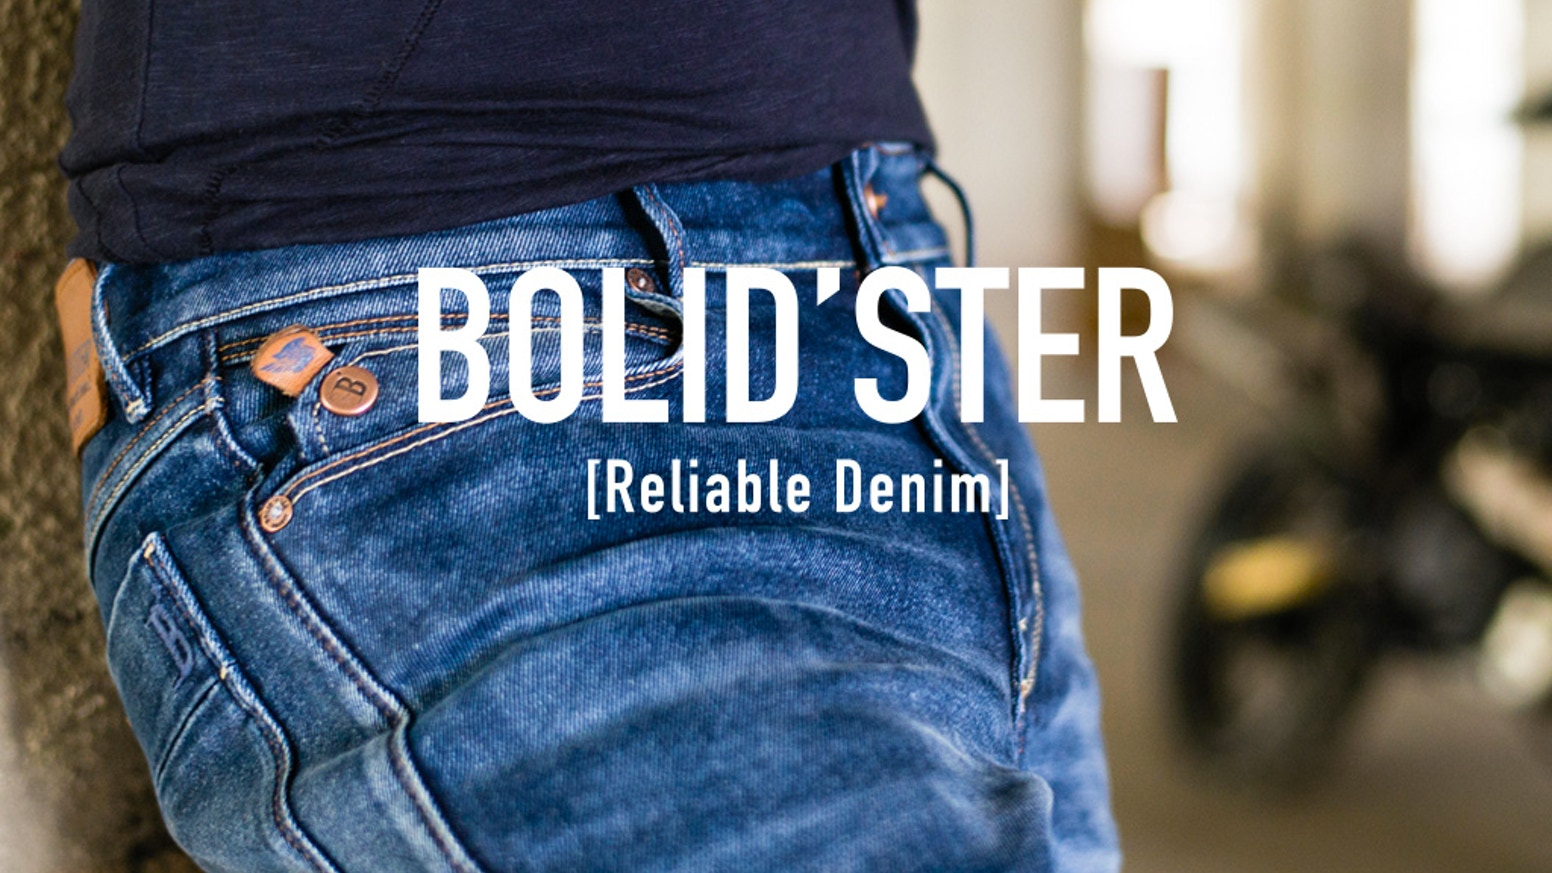 For every tough fall on the road (motorcycle, skate, downhill…) there's an equally tough line of denim to protect your skin